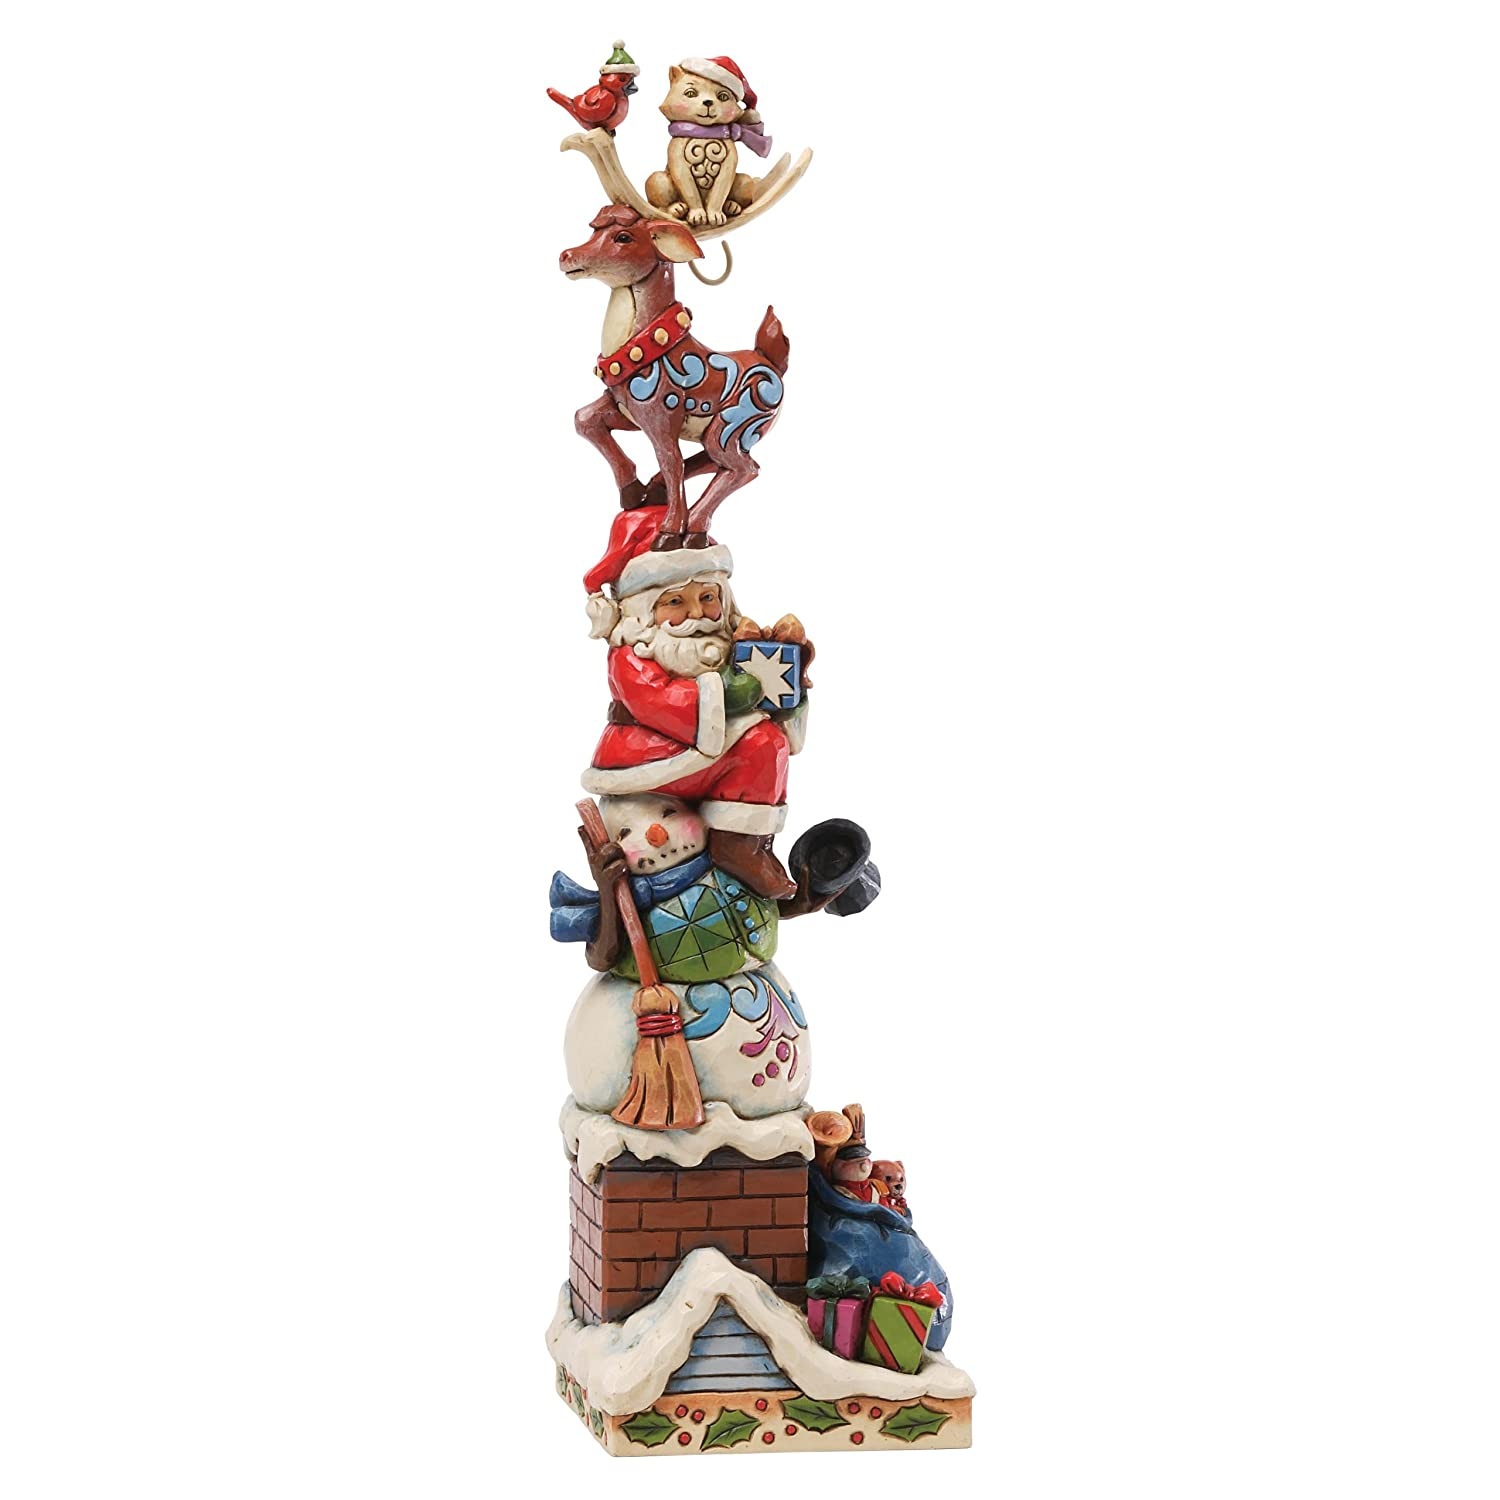 Jim Shore for Enesco Heartwood Creek Holiday Friends on The Rooftop Figurine, 12.5-Inch